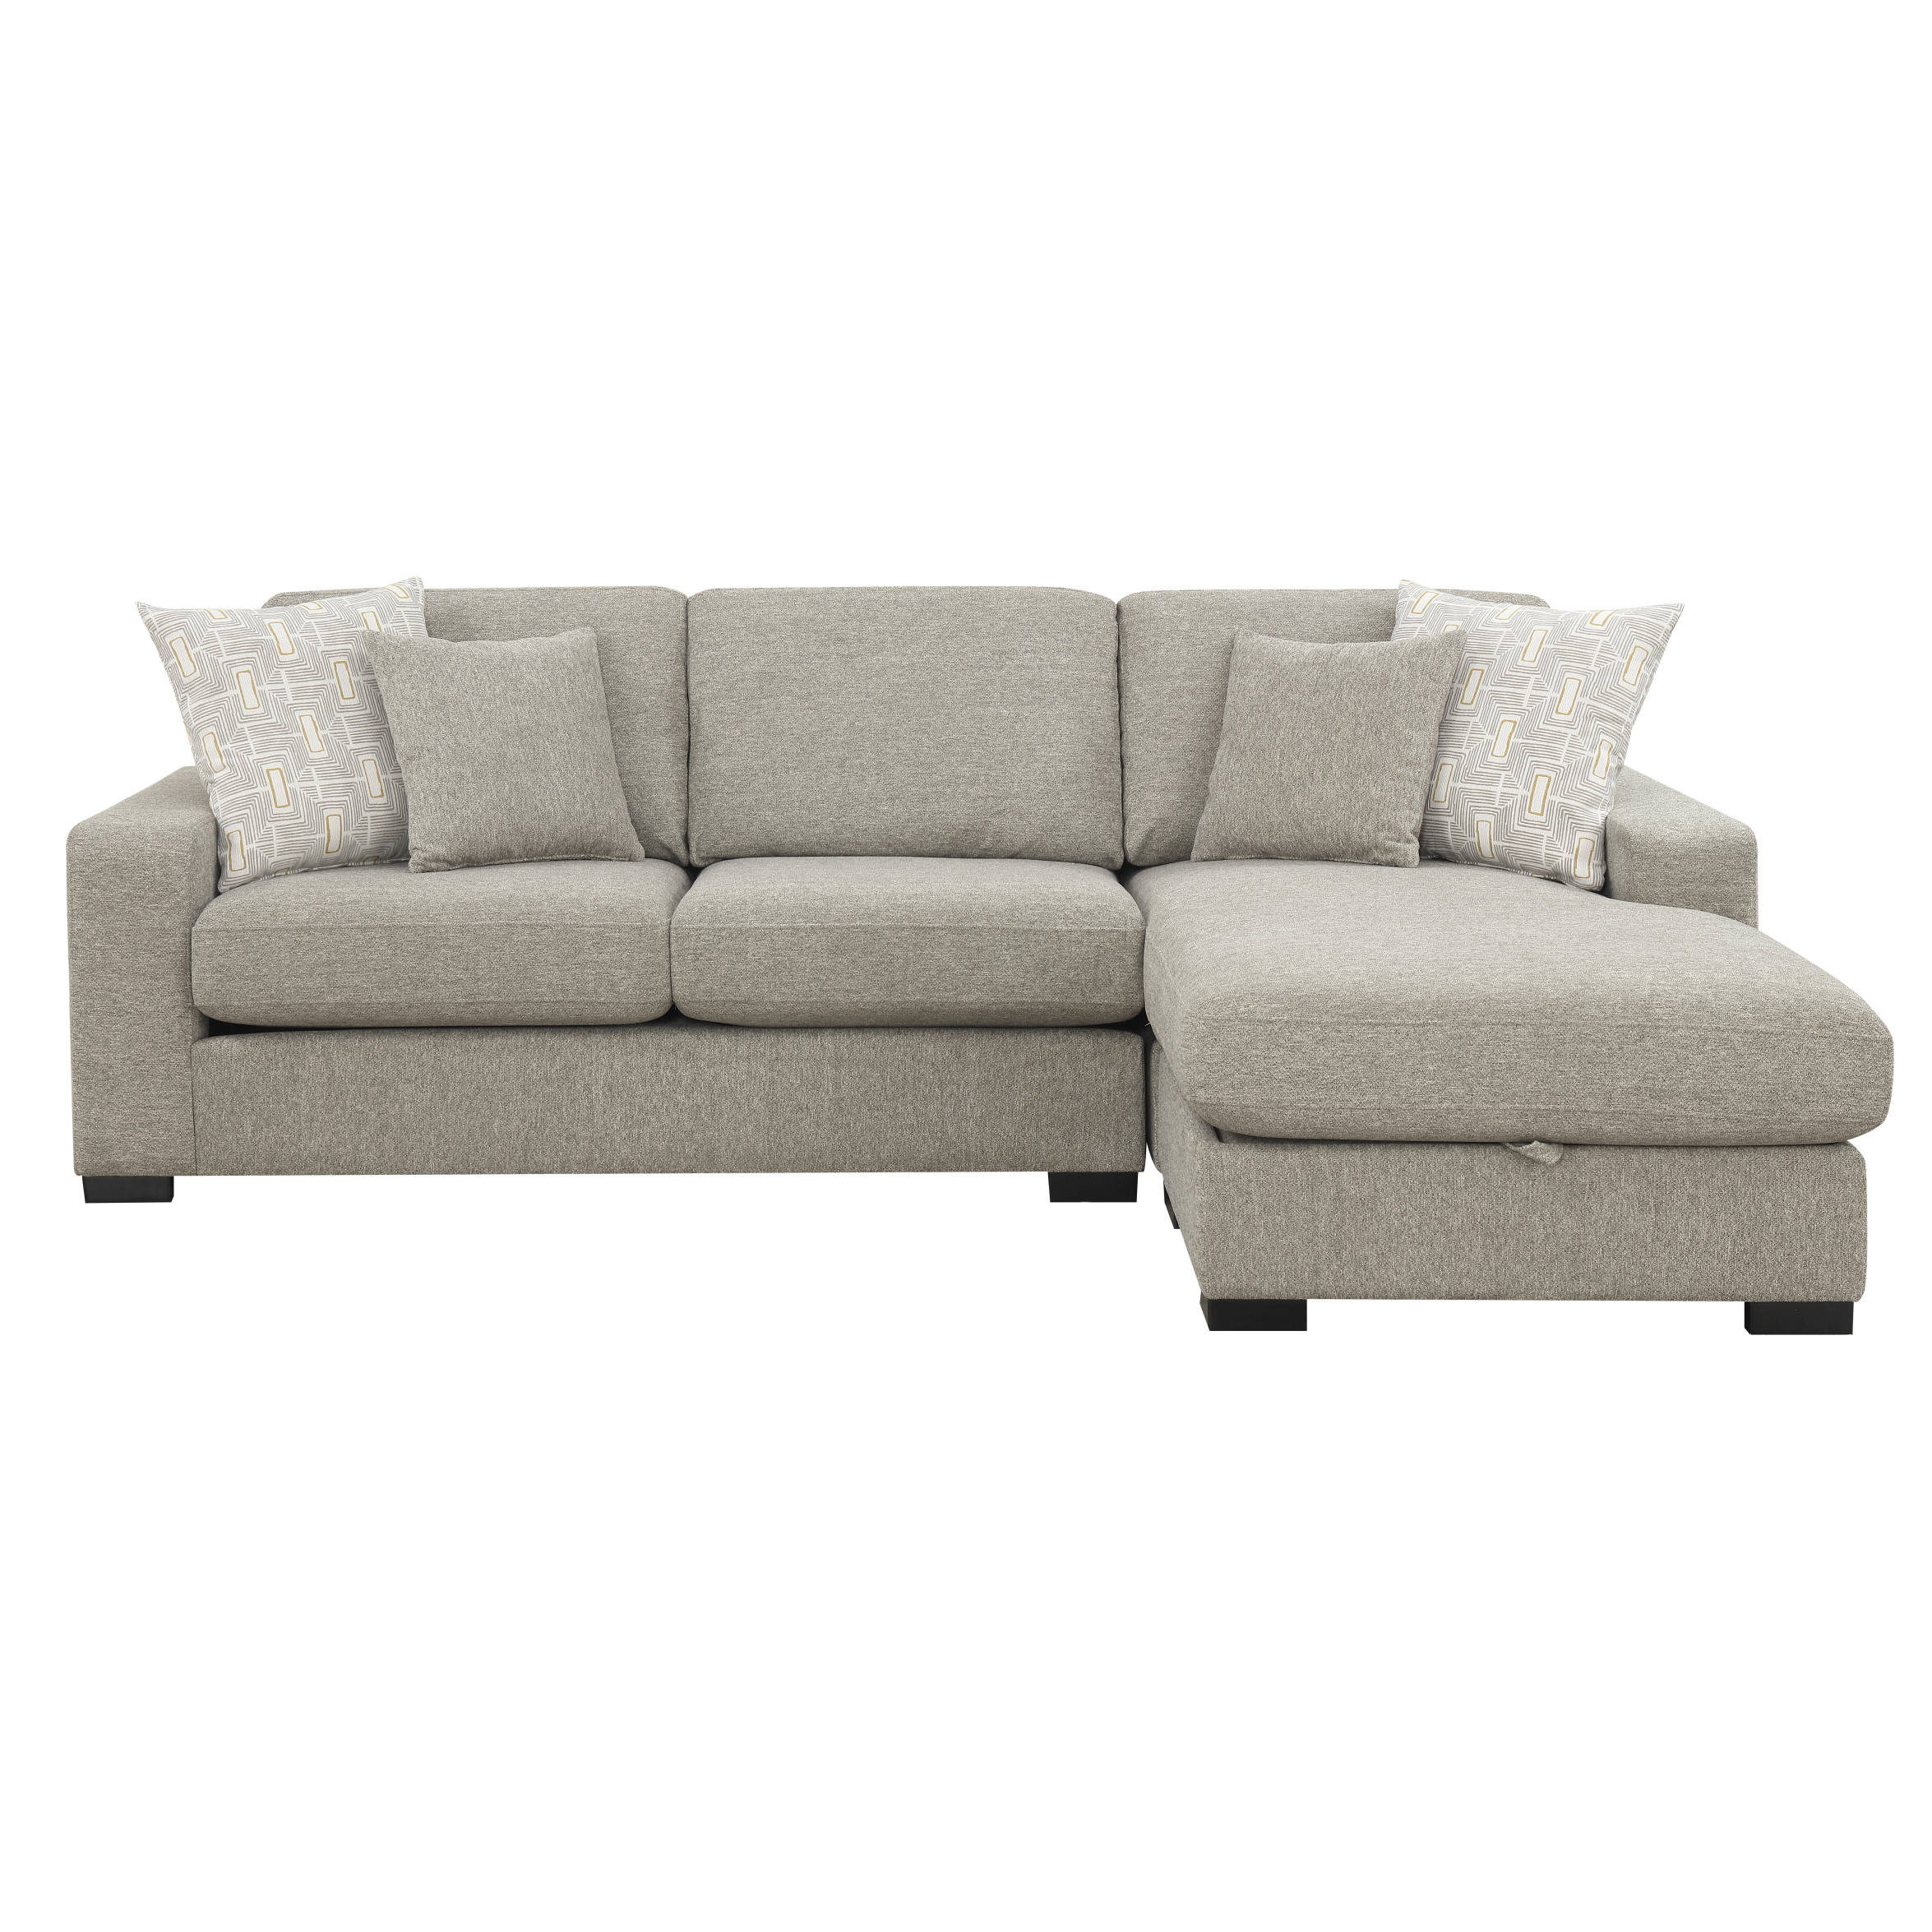 Prime Emerald Home Brahms Gray Reversible Sectional Squirreltailoven Fun Painted Chair Ideas Images Squirreltailovenorg